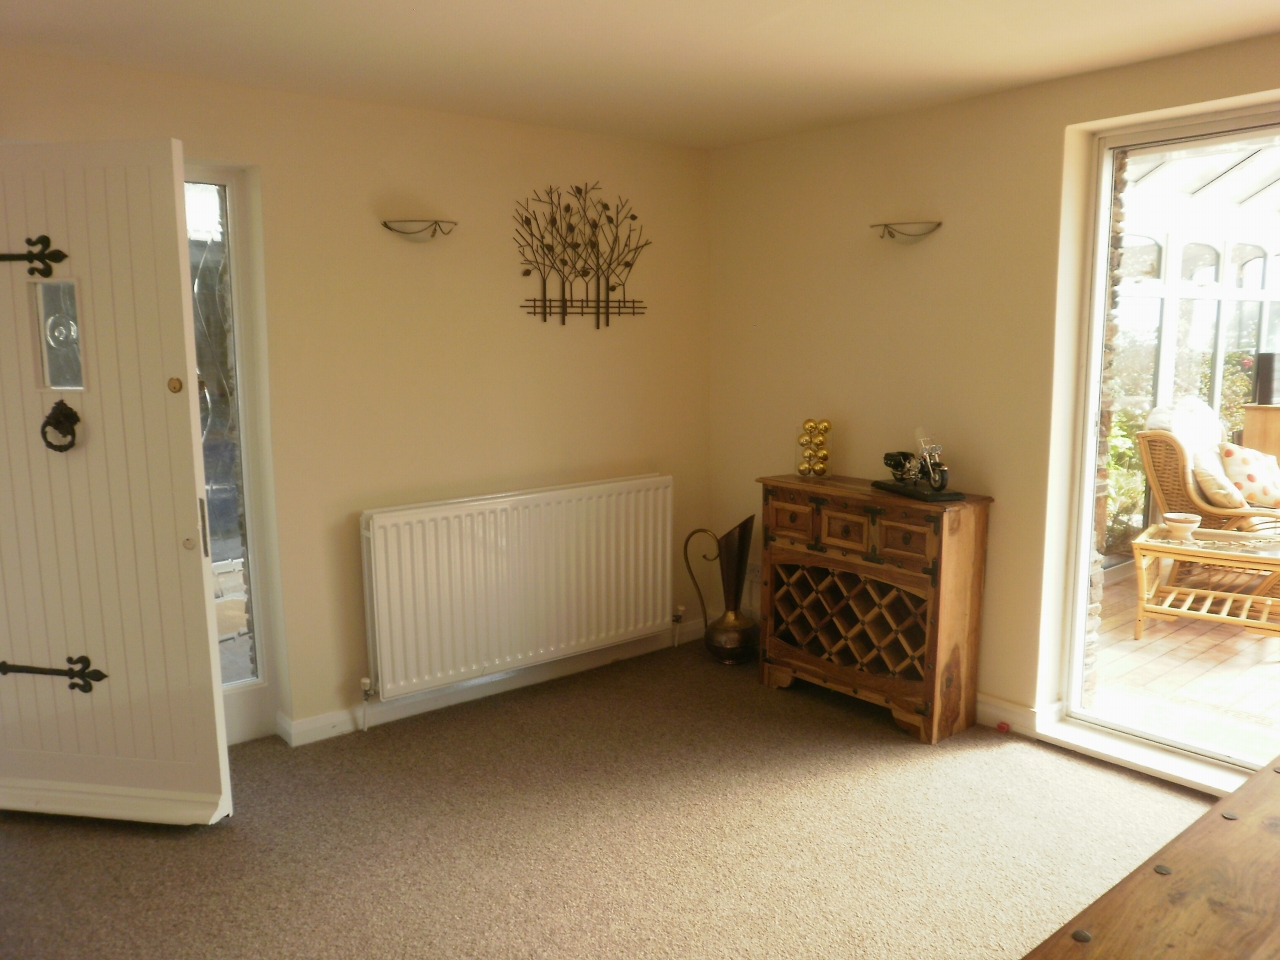 5 bedroom detached house SSTC in Colby - Photograph 29